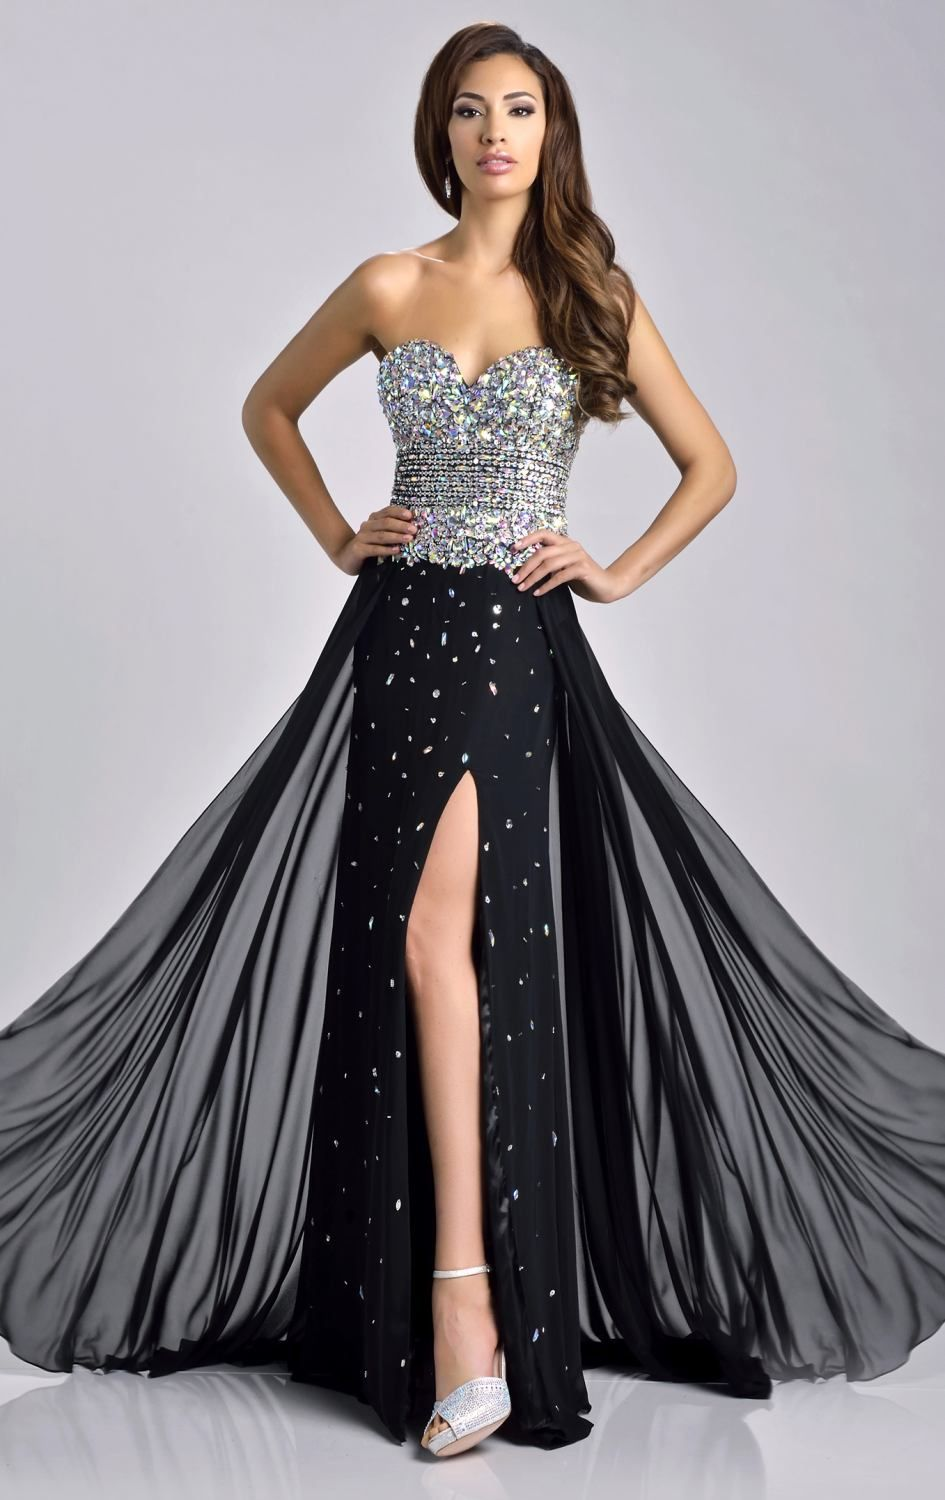 Long black strapless sweetheart neckline prom dress with lots of